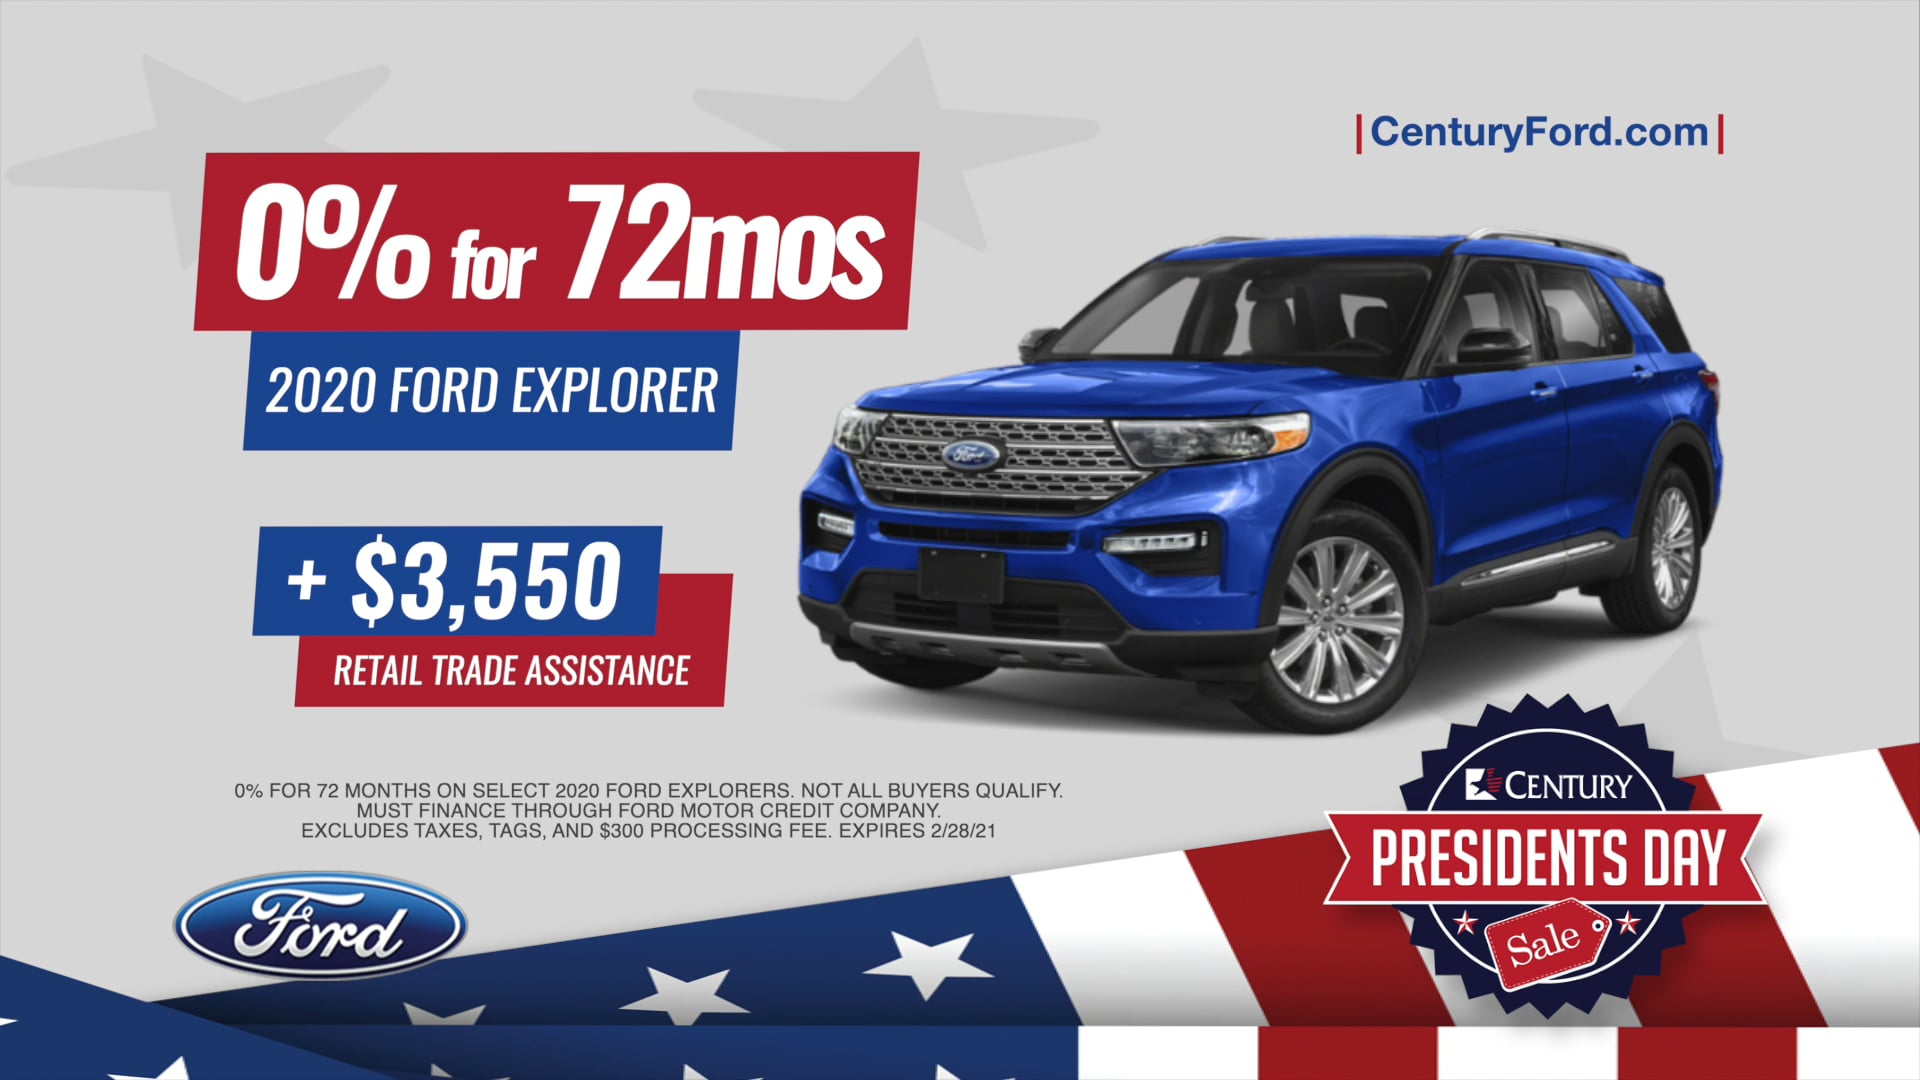 Century Ford President's Day 2021